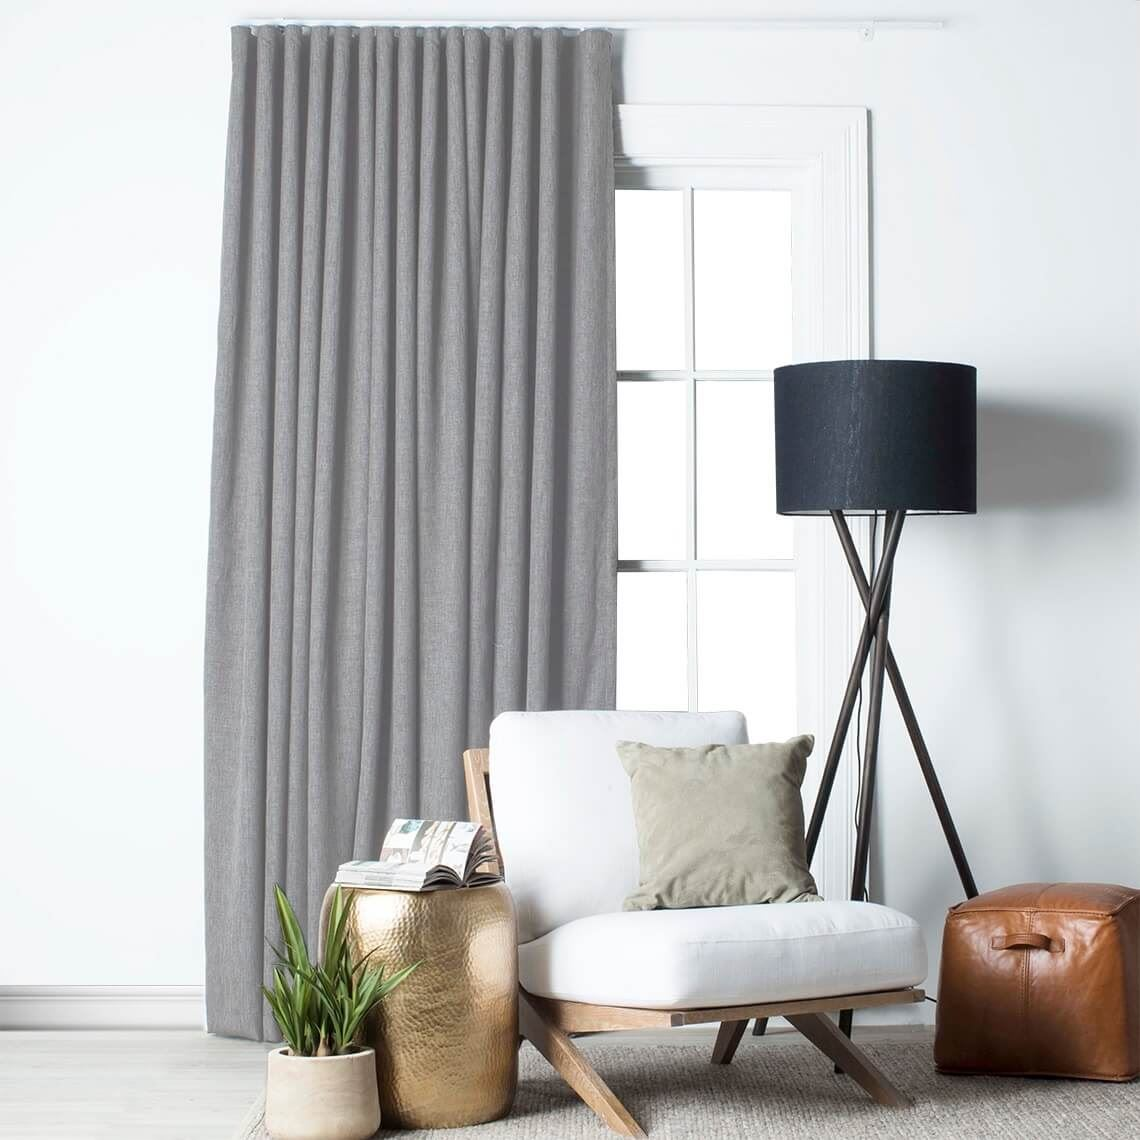 Lyndon Blockout Curtain Size W 360cm x D 1cm x H 280cm in Silver 100% Polyester Freedom by Freedom, a Curtains for sale on Style Sourcebook